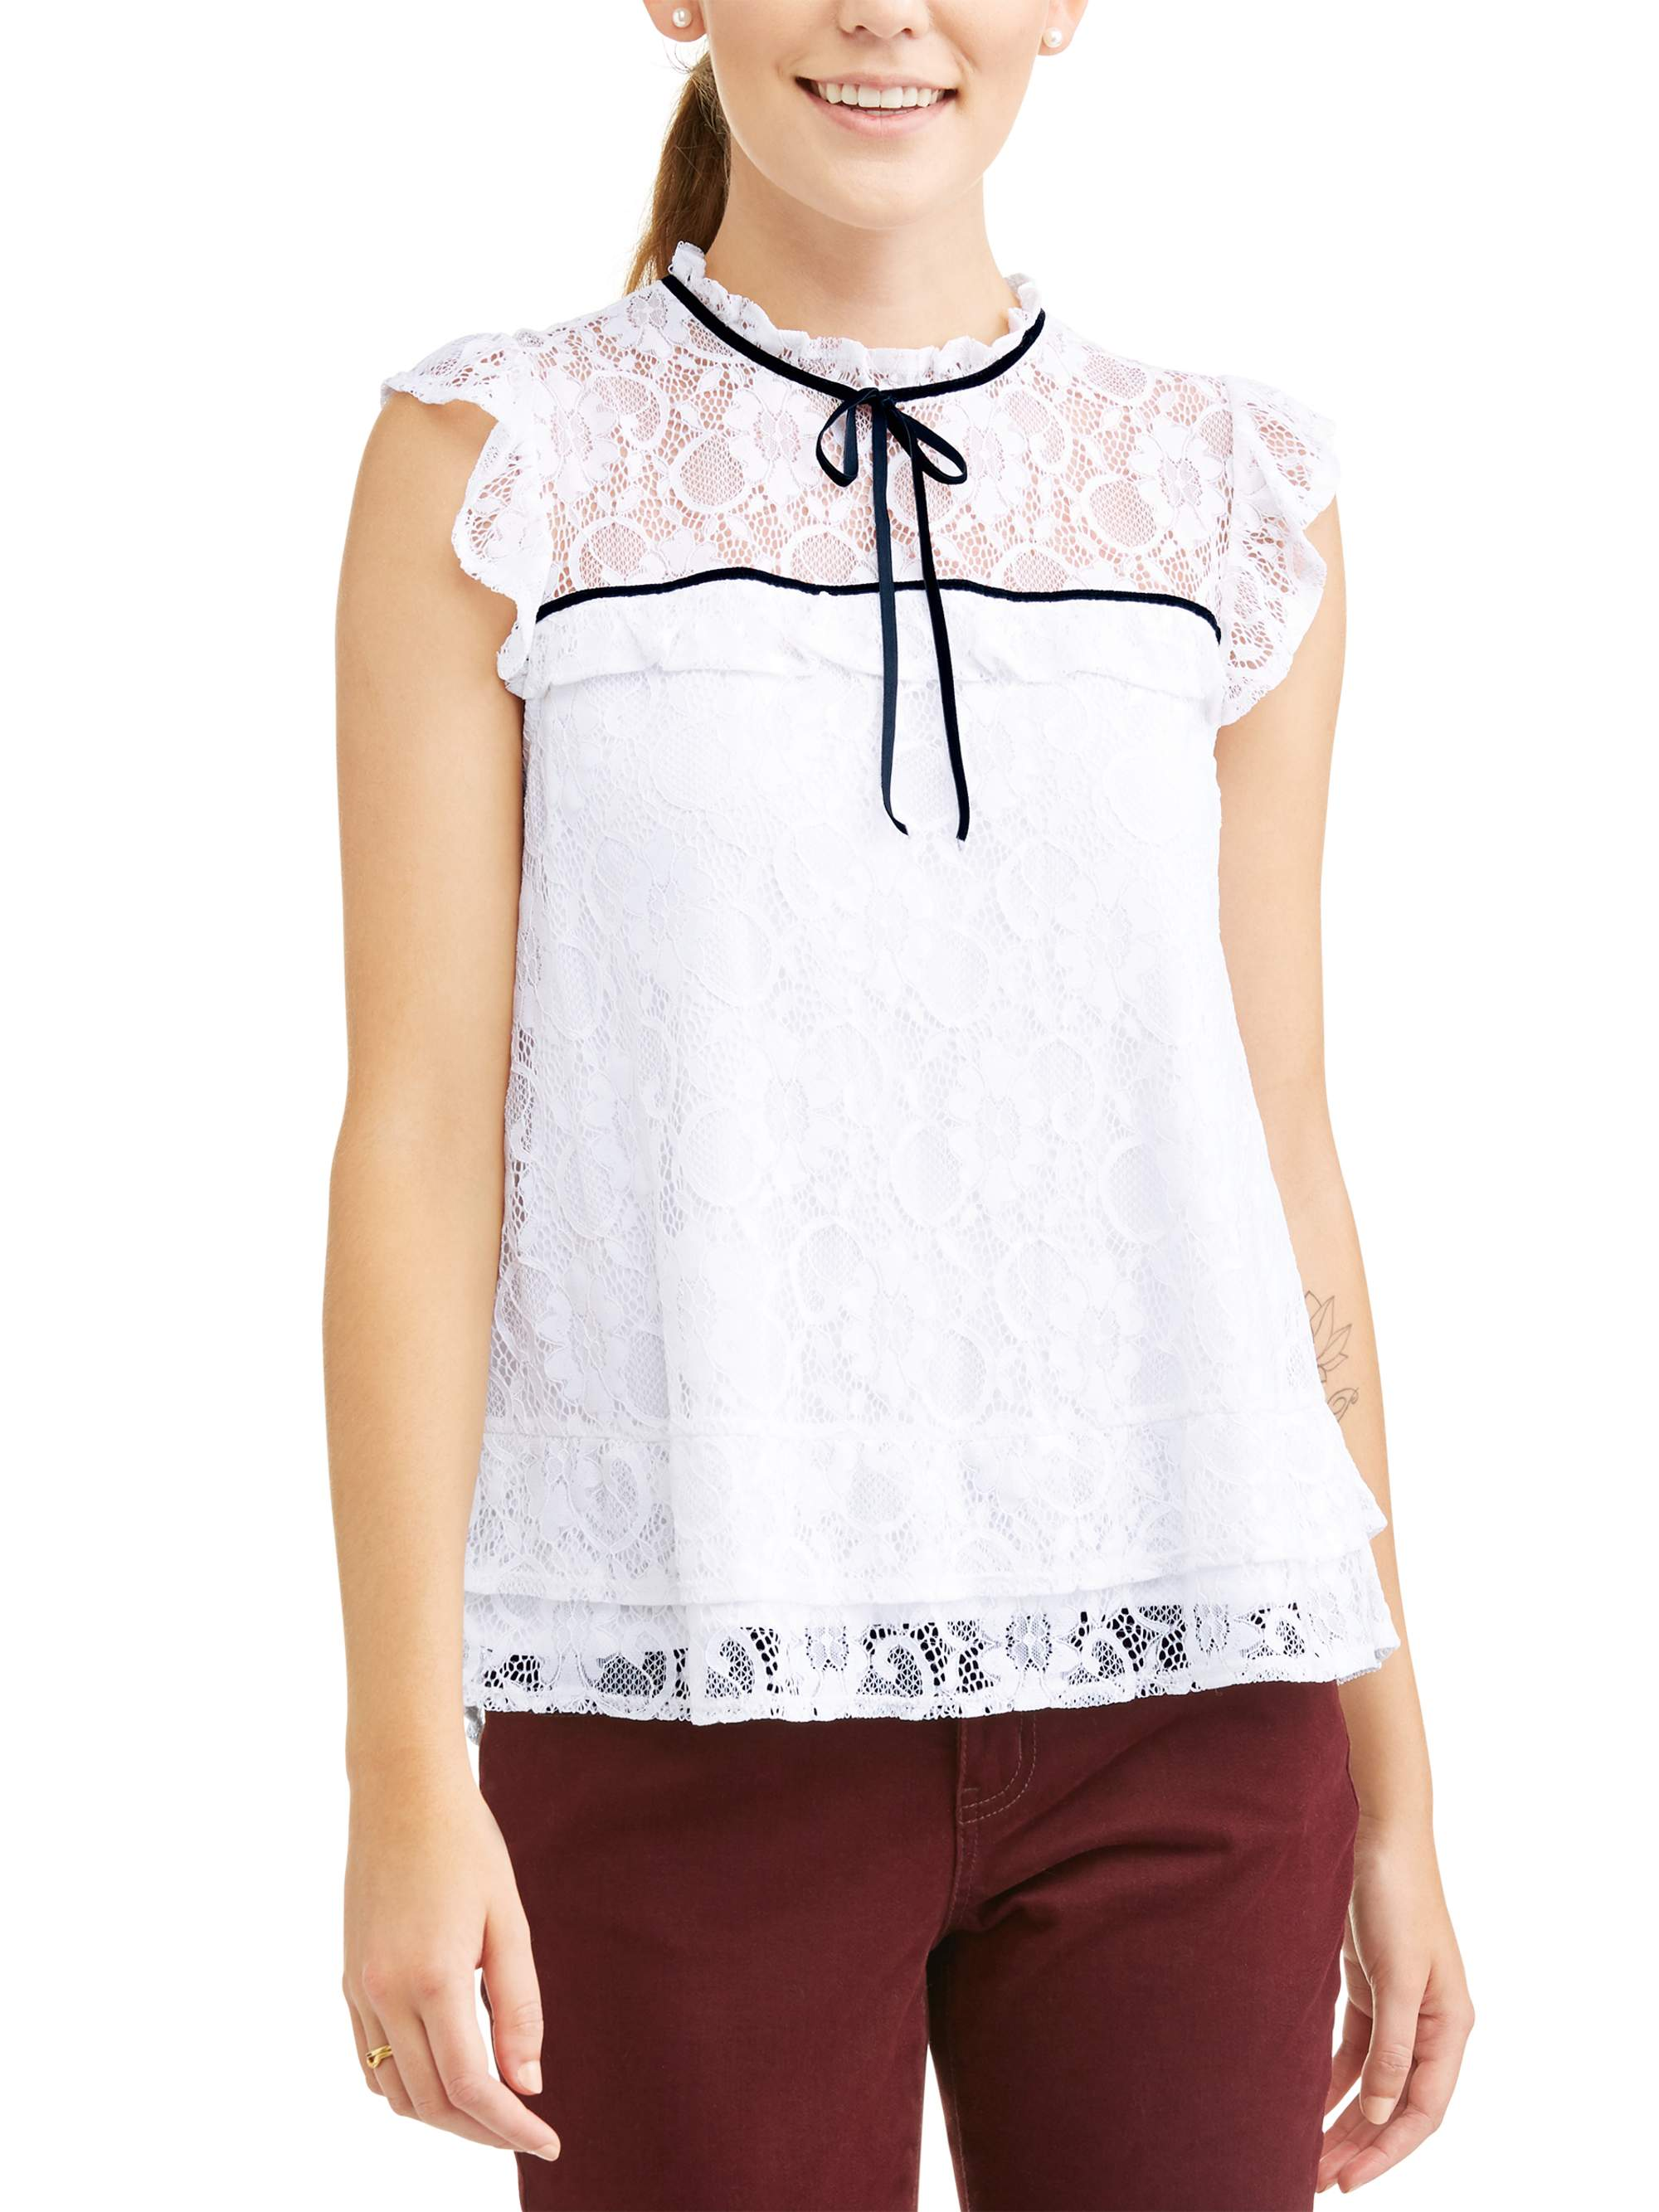 8501be916285c1 Alison Andrews - Women's High Neck Ruffle Lace Short Sleeve Top -  Walmart.com